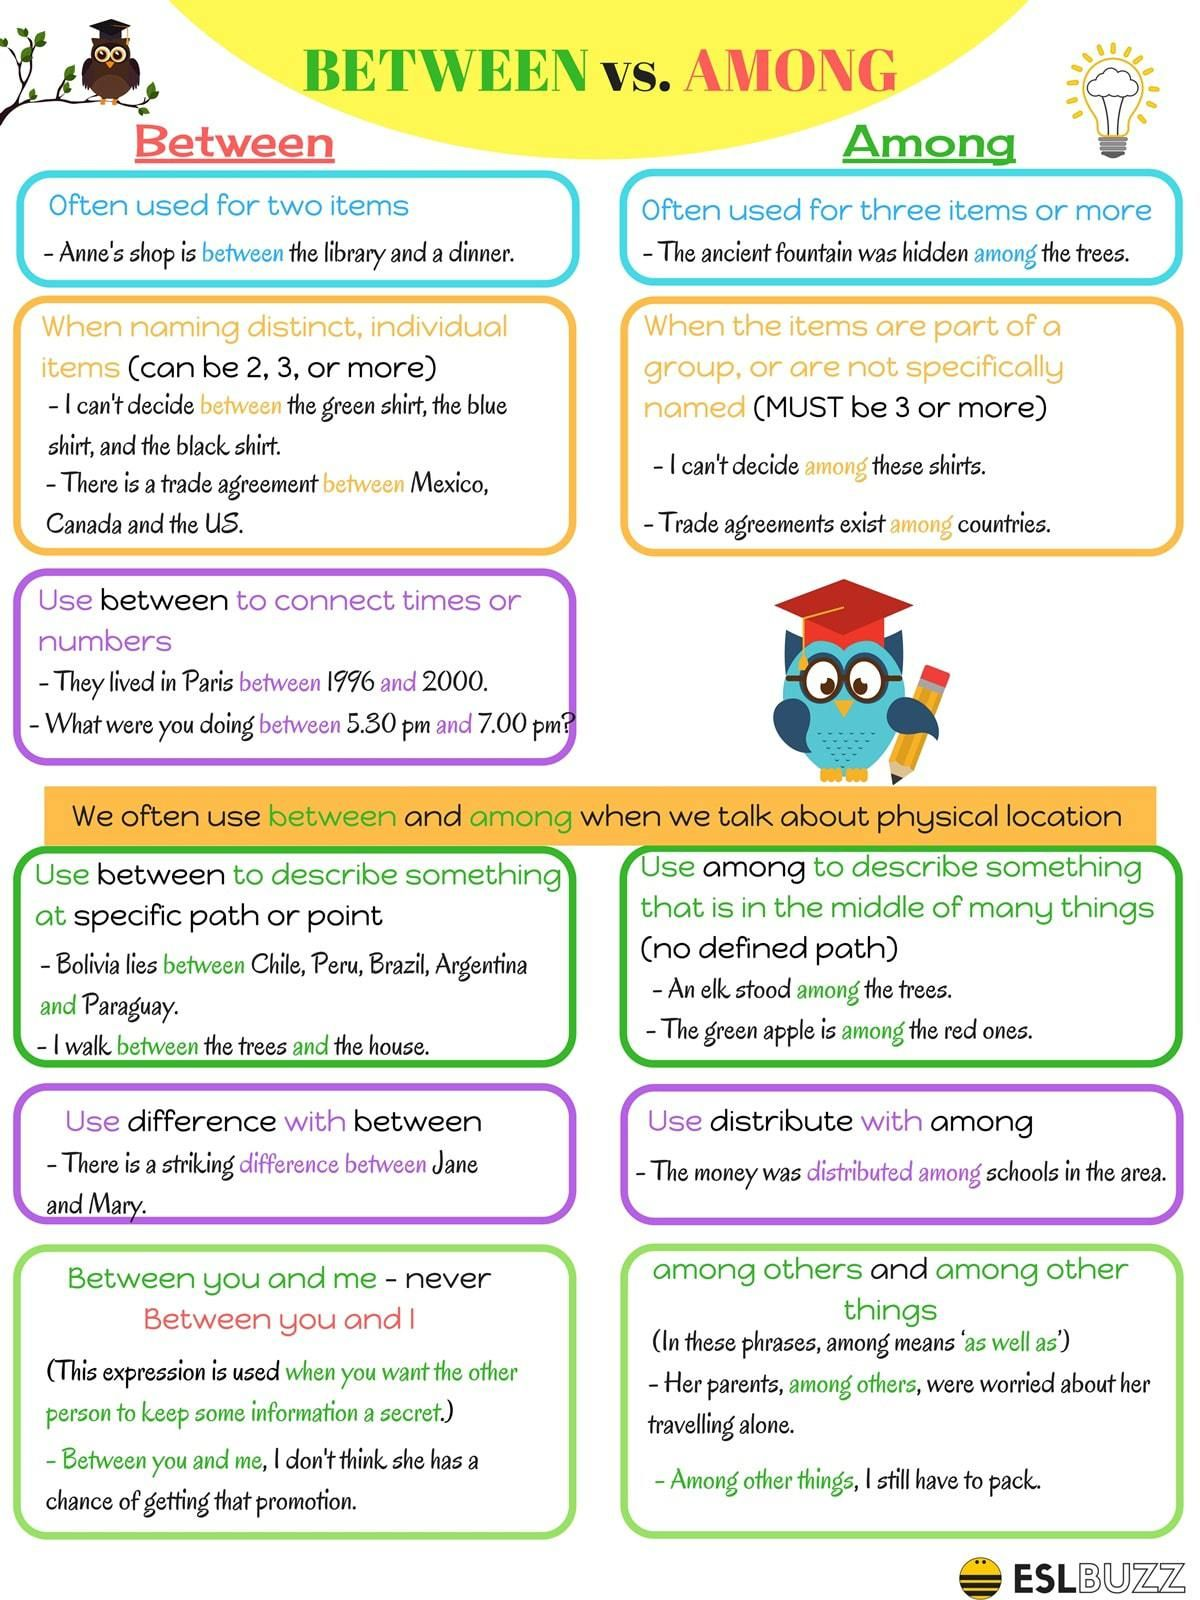 Commonly Confused Words Between Vs Among